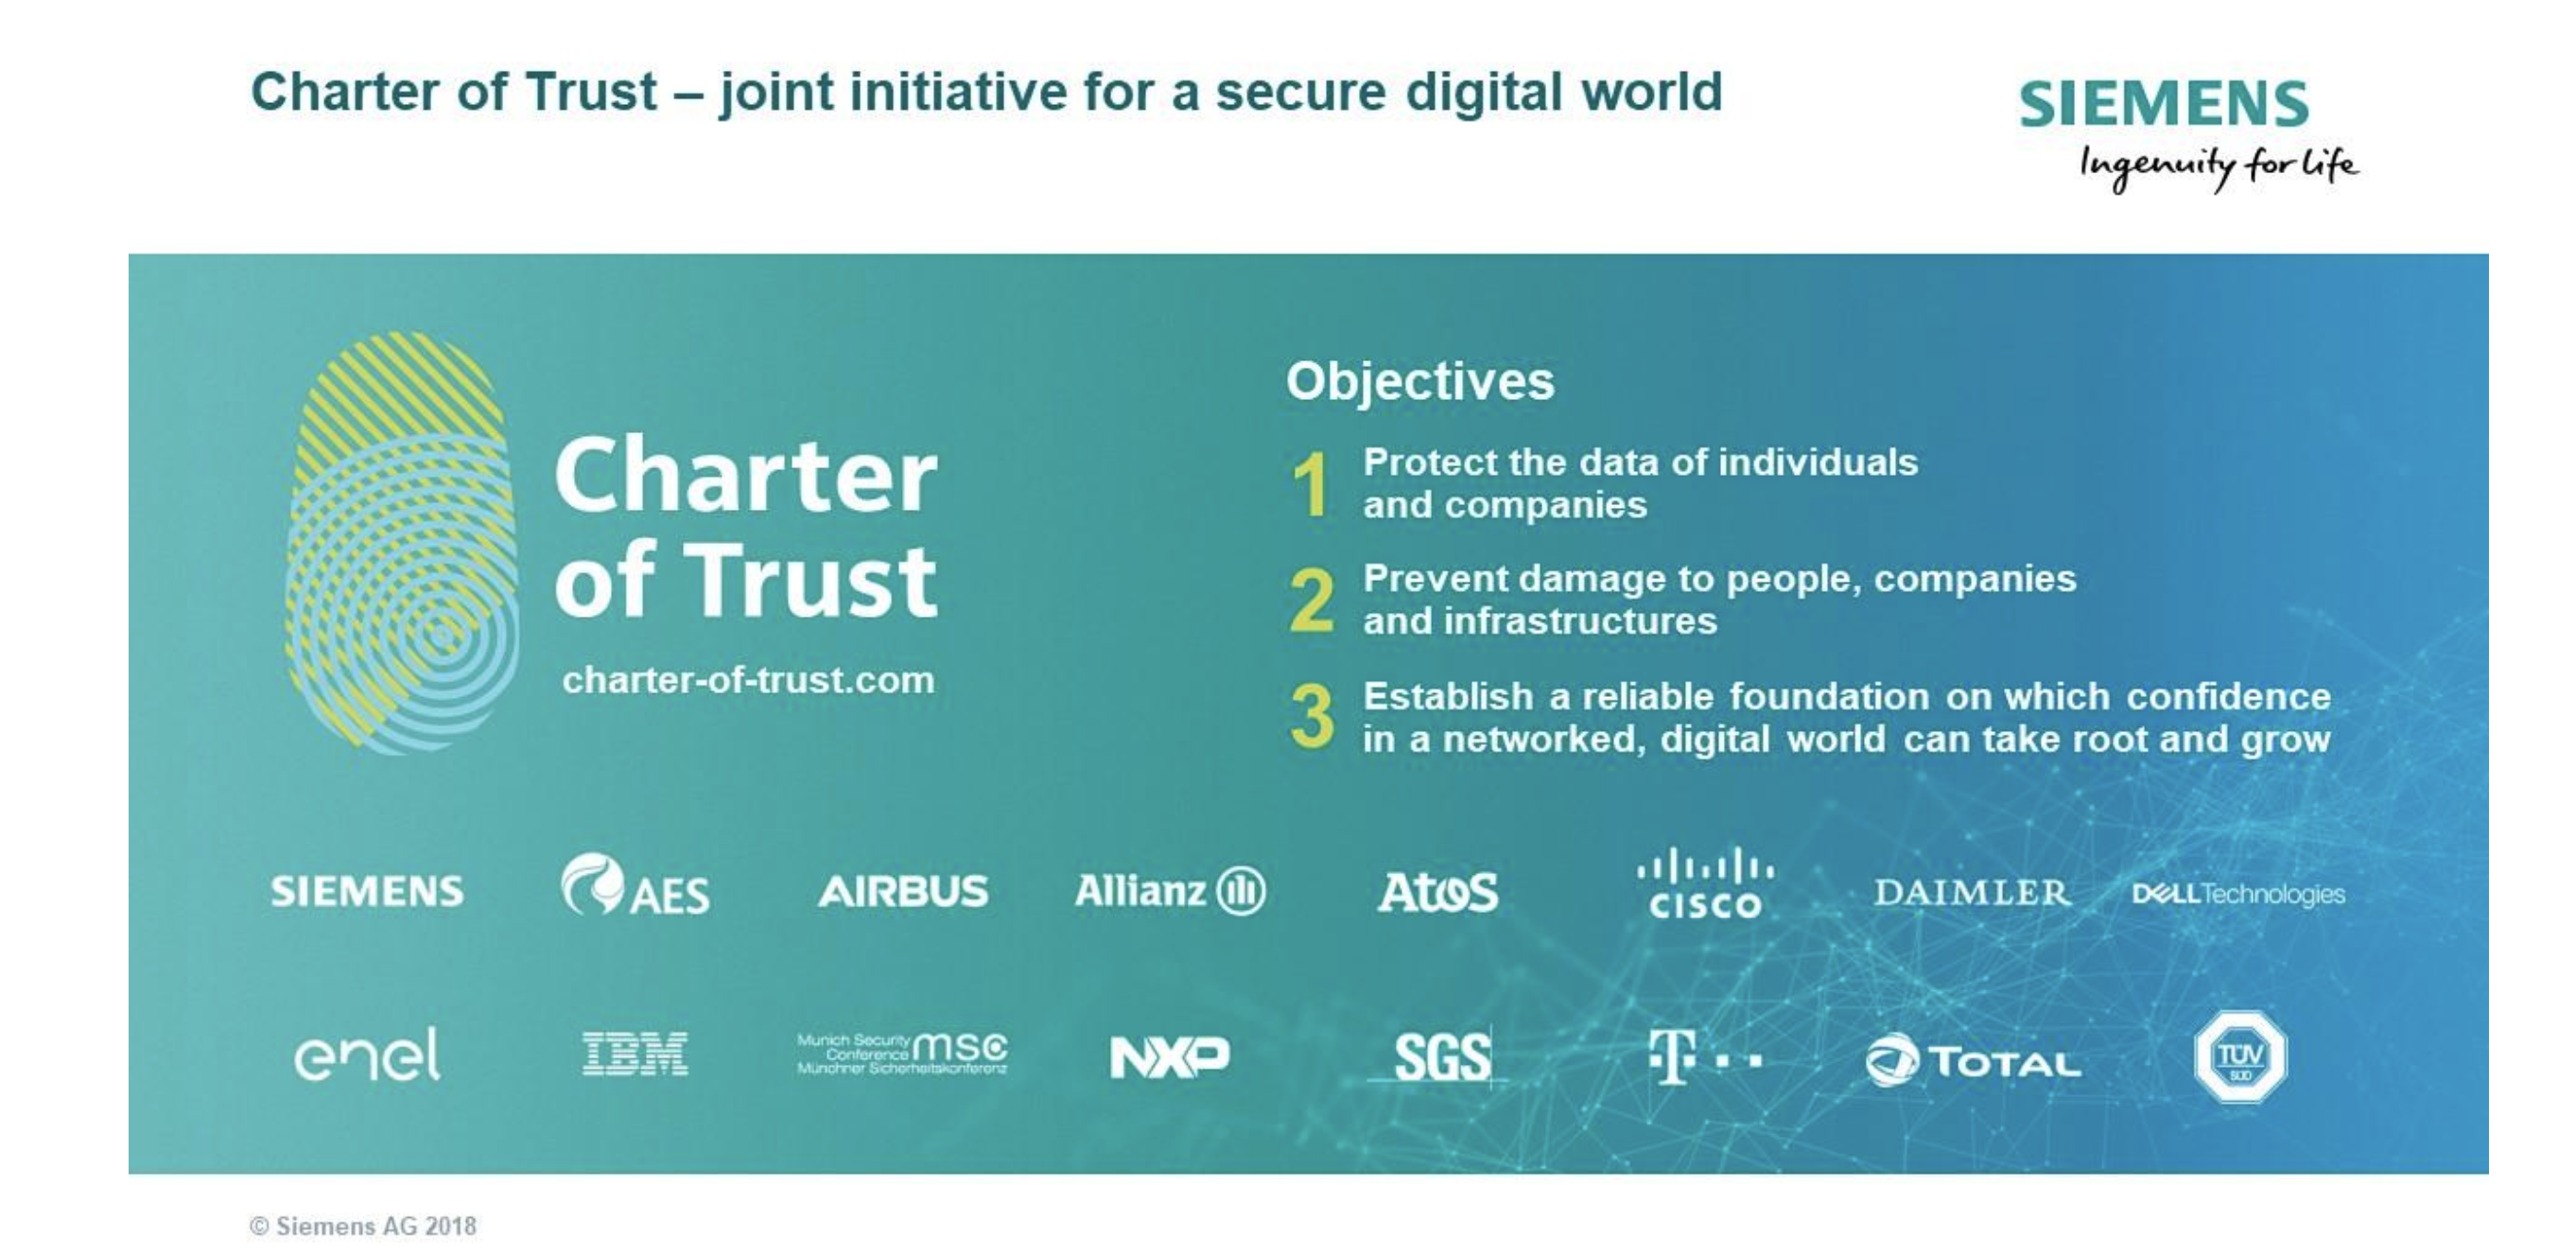 16 global companies have signed up to Siemens' Charter of Trust